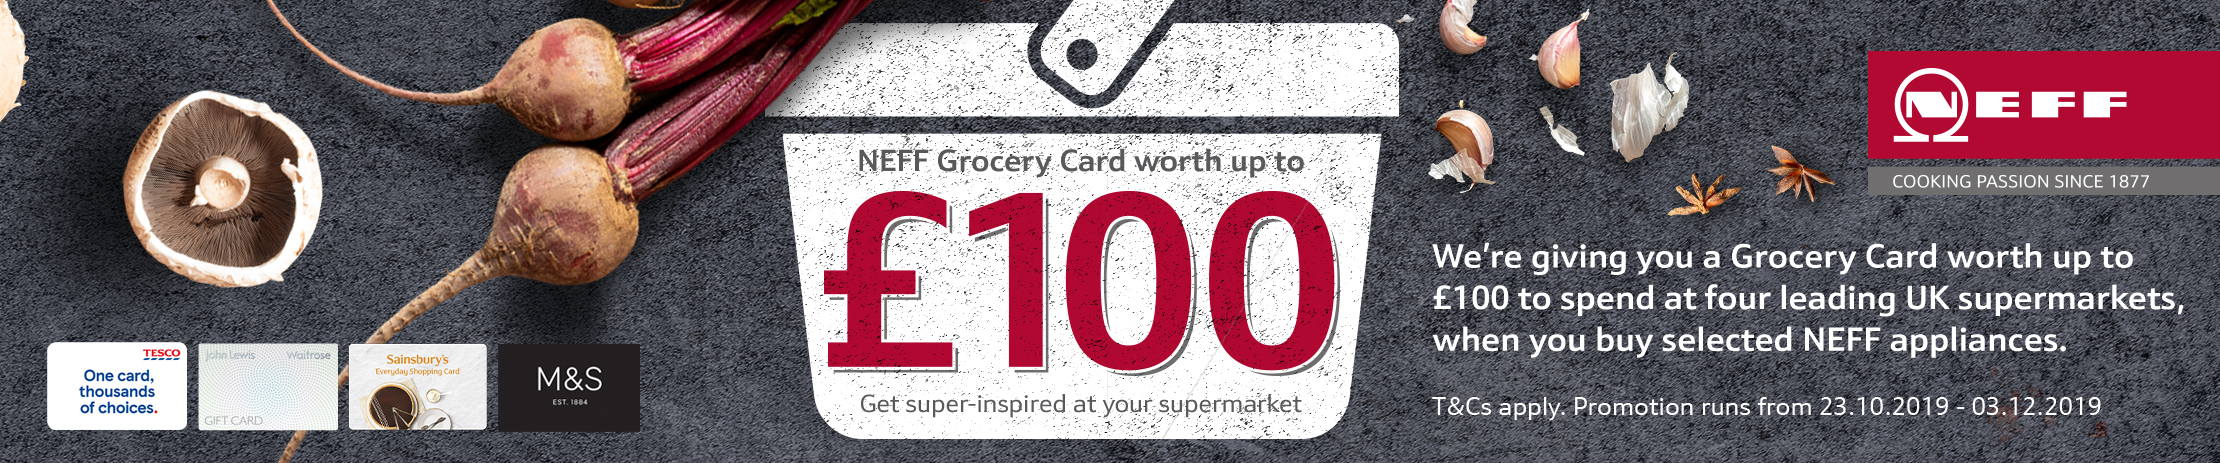 NEFF Winter Grocery Card Promotion